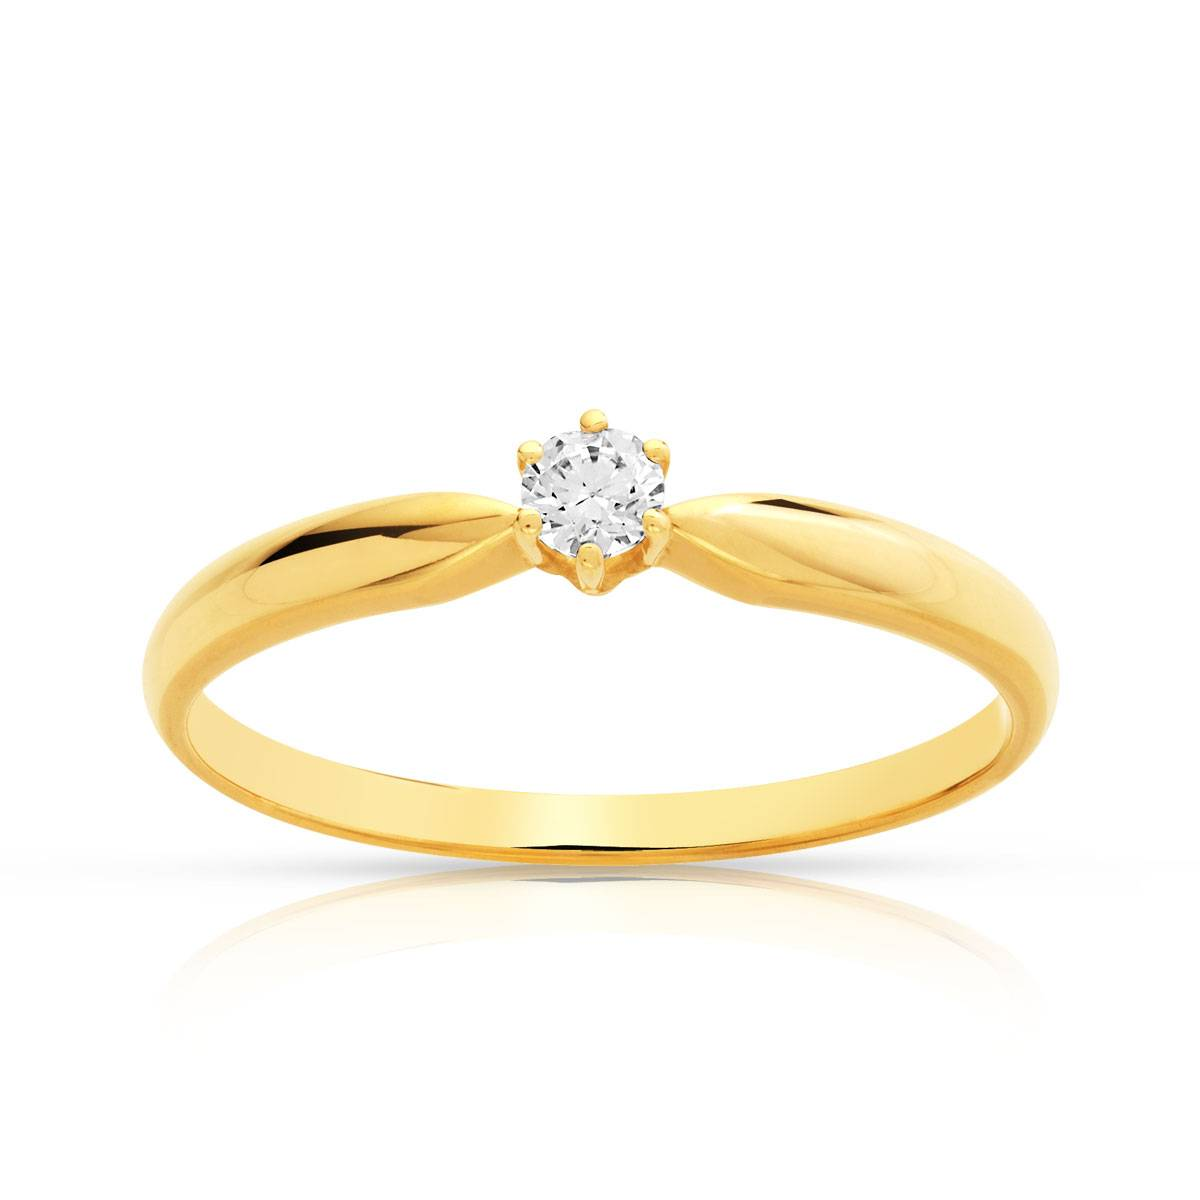 MATY Solitaire or 750 jaune diamant synthétique 0,1 carat- MATY